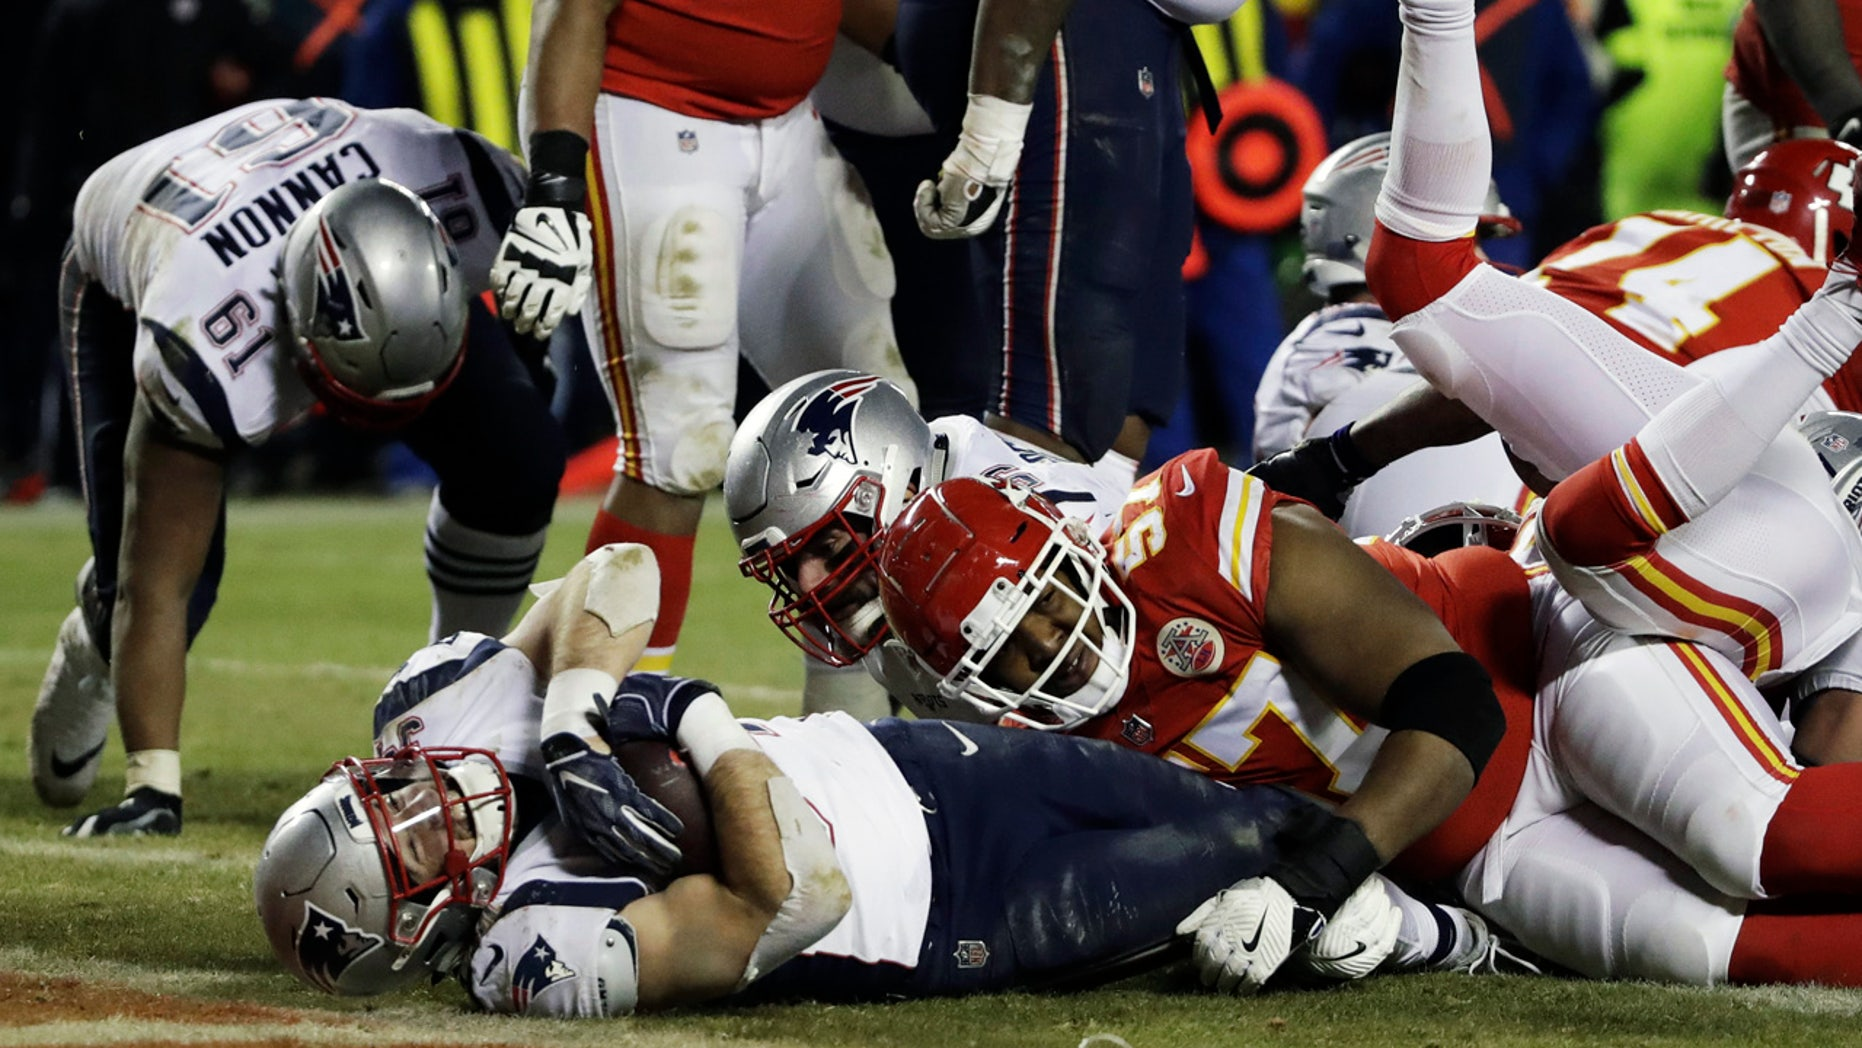 Rex Burkhead is in favor of the winning score in overtime. (AP Photo / Elise Amendola)